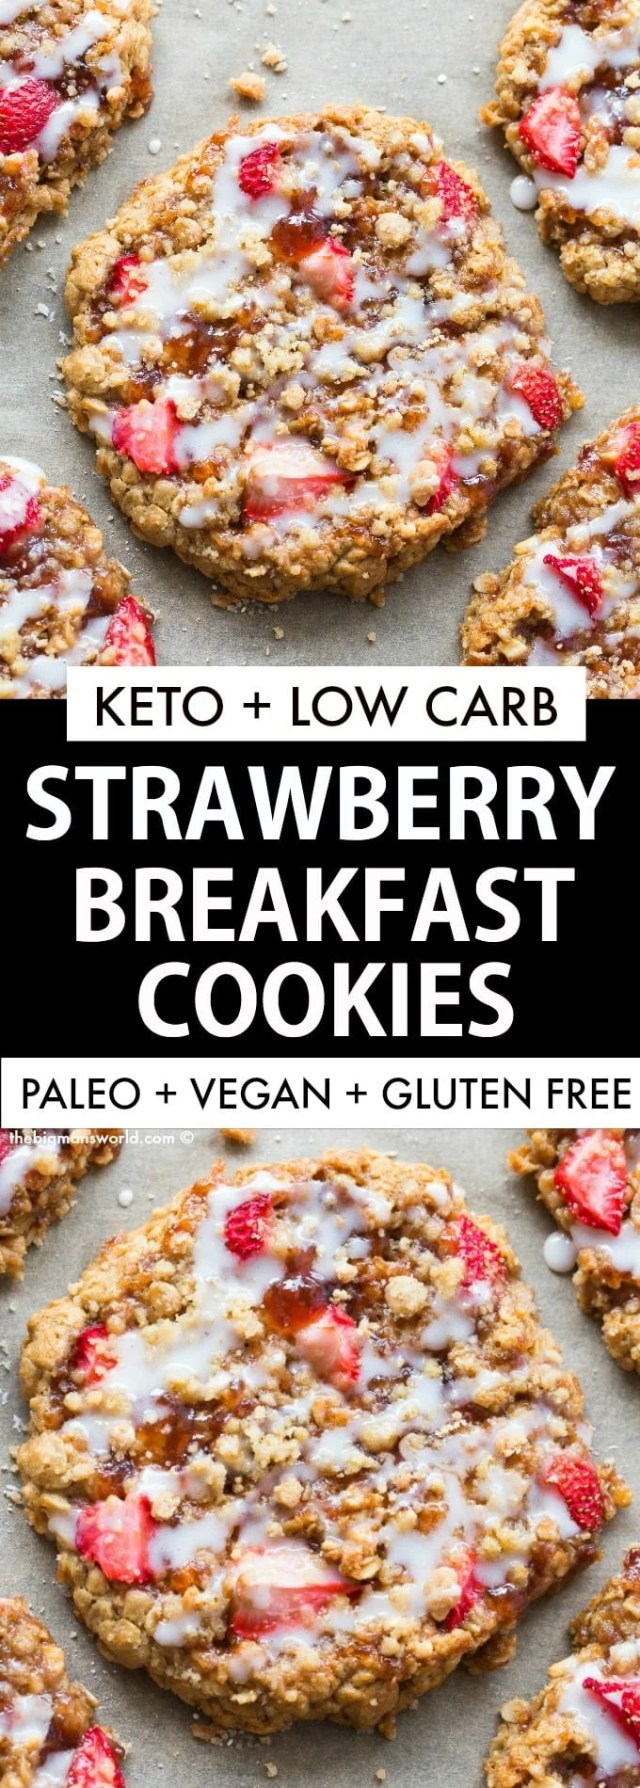 Healthy Strawberry Breakfast Cookie recipe made with wholesome ingredients and NO sugar!